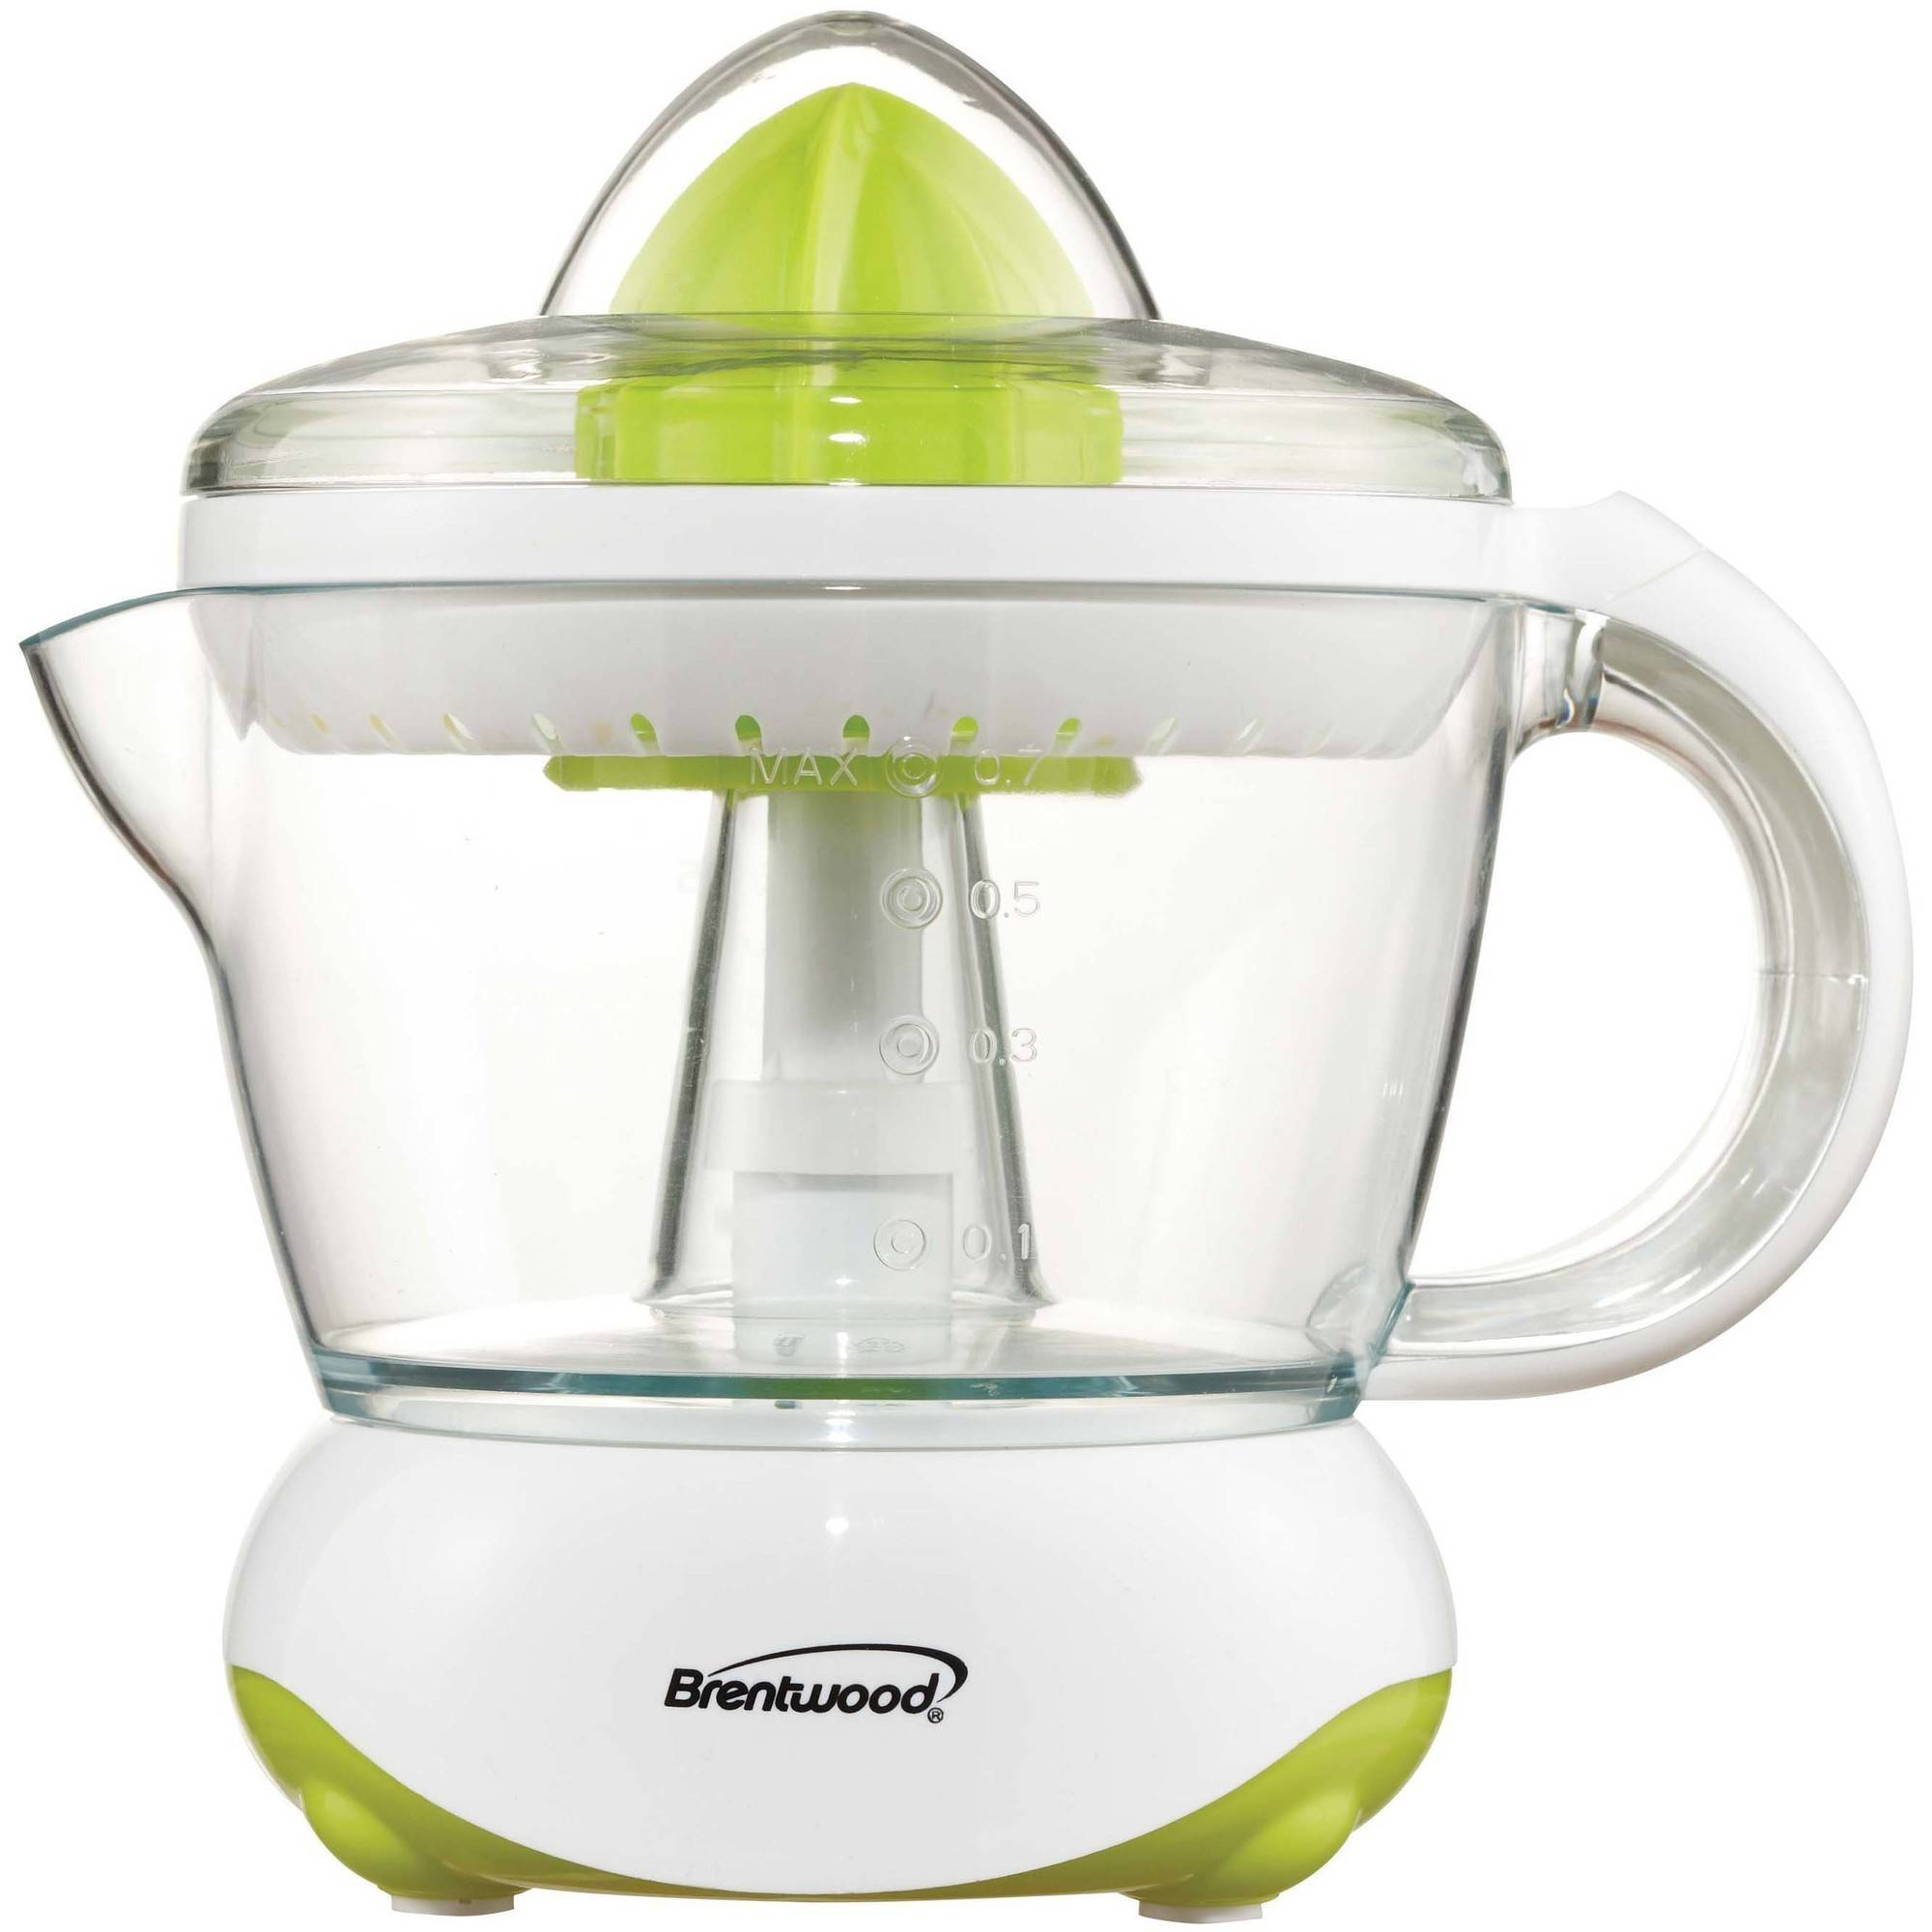 Brentwood Citrus Juicer 500 ml